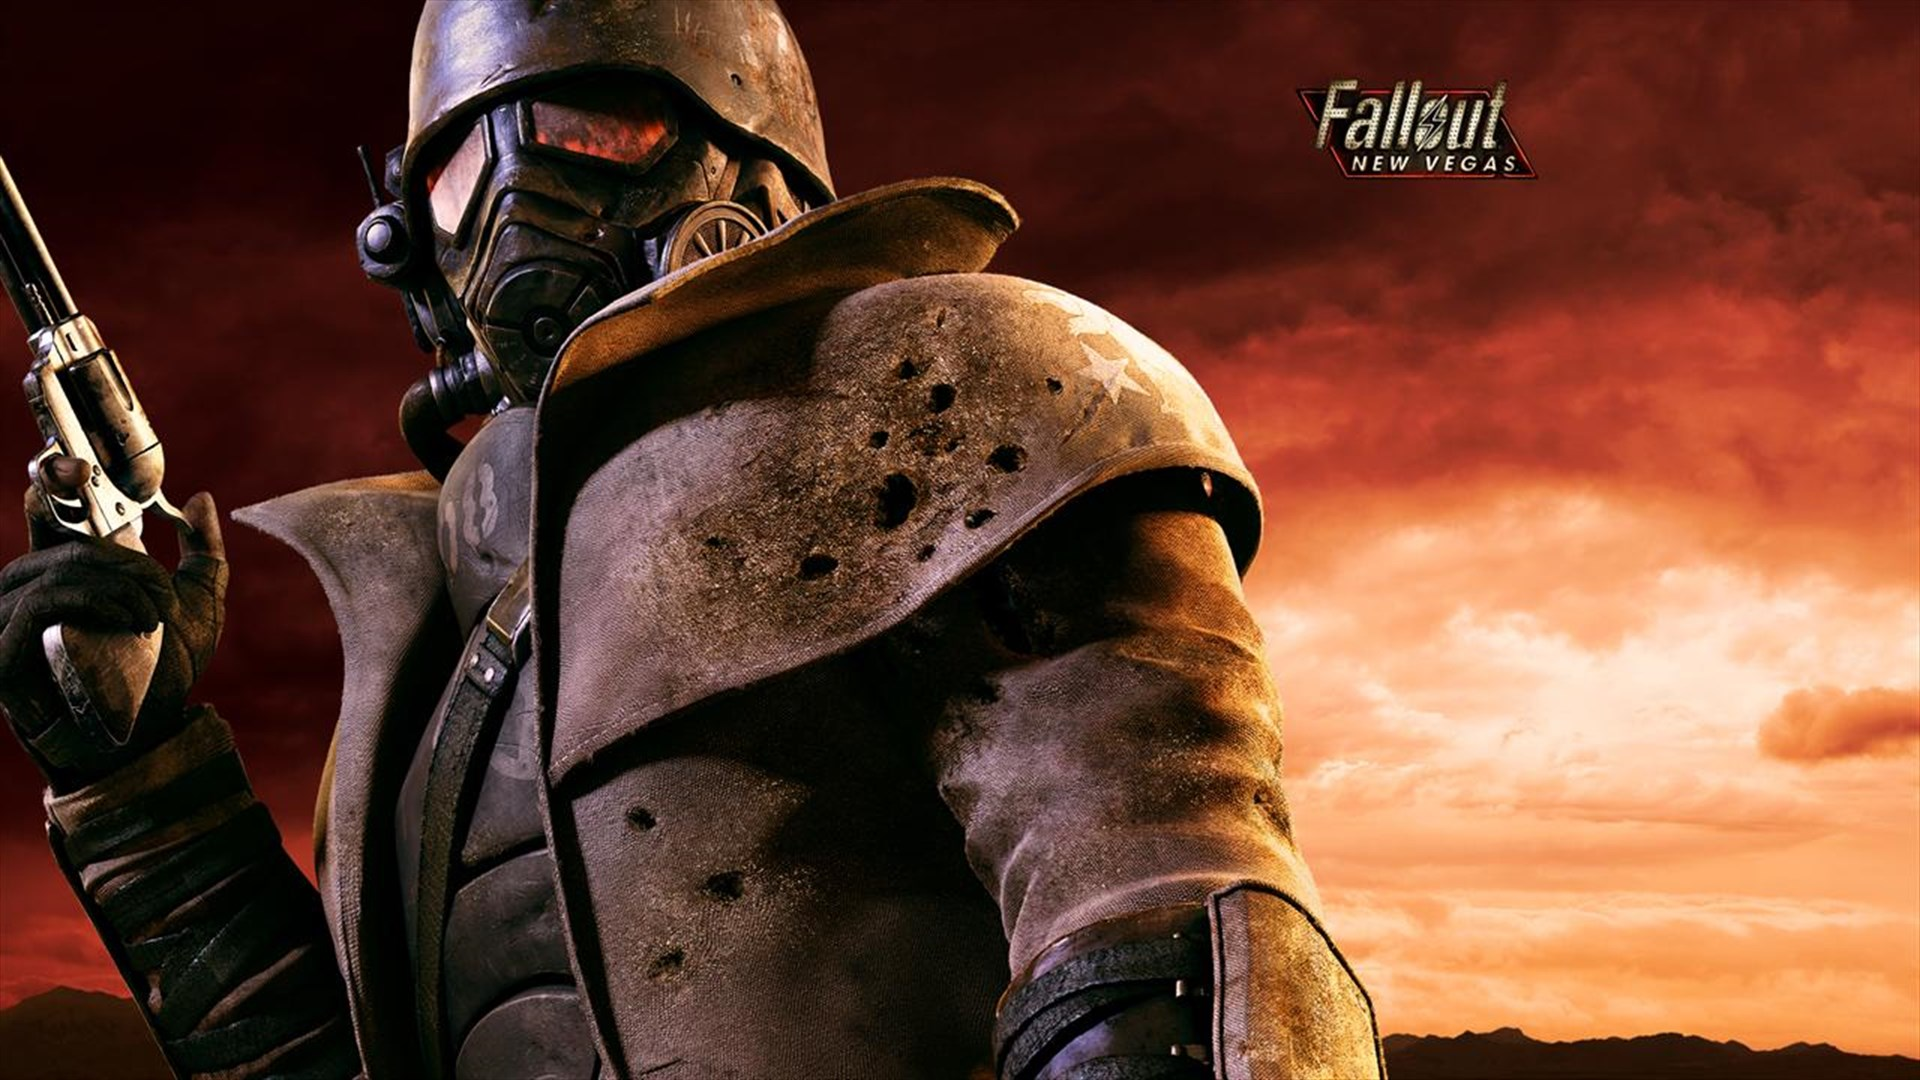 fallout 3 new vegas specials and skills guide hardcore mode